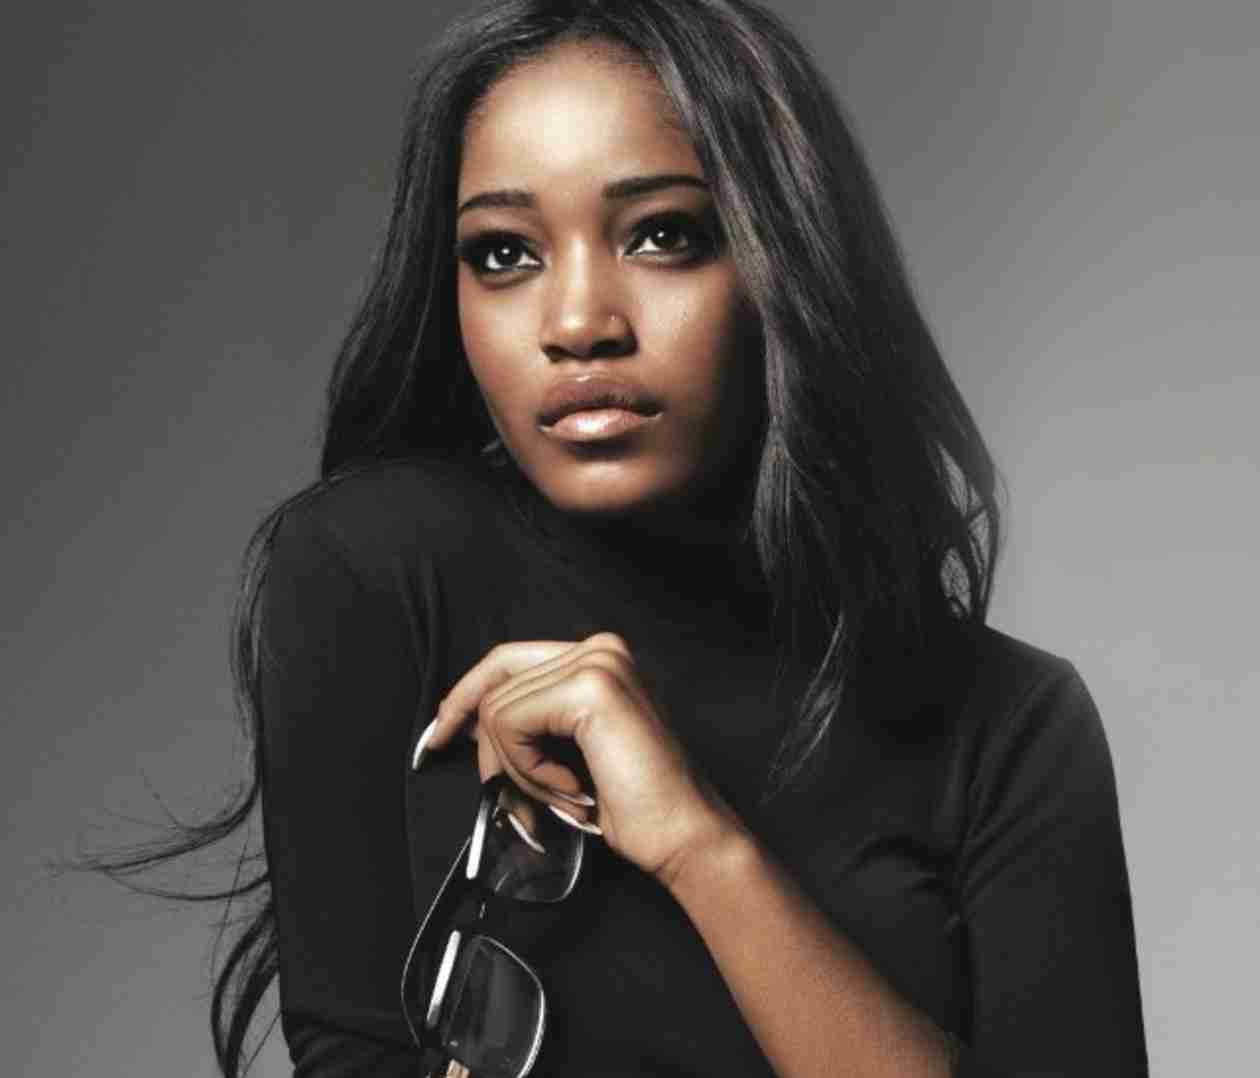 Grey's Anatomy: Nickelodeon Star Keke Palmer to Play Shane's Pregnant Teen Patient (UPDATE)